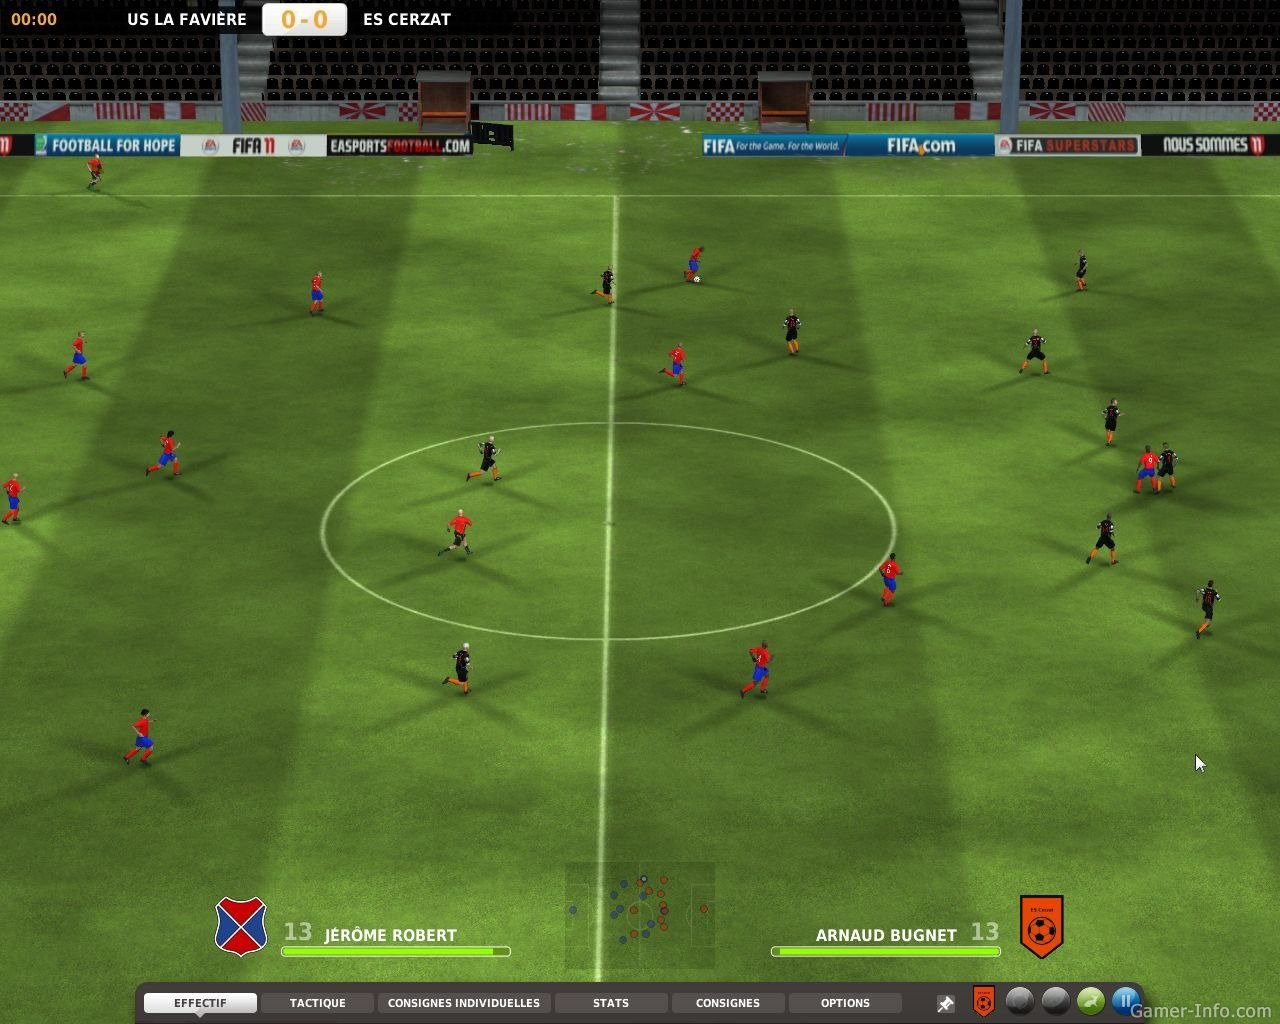 FIFA Manager 11 (2010 video game)